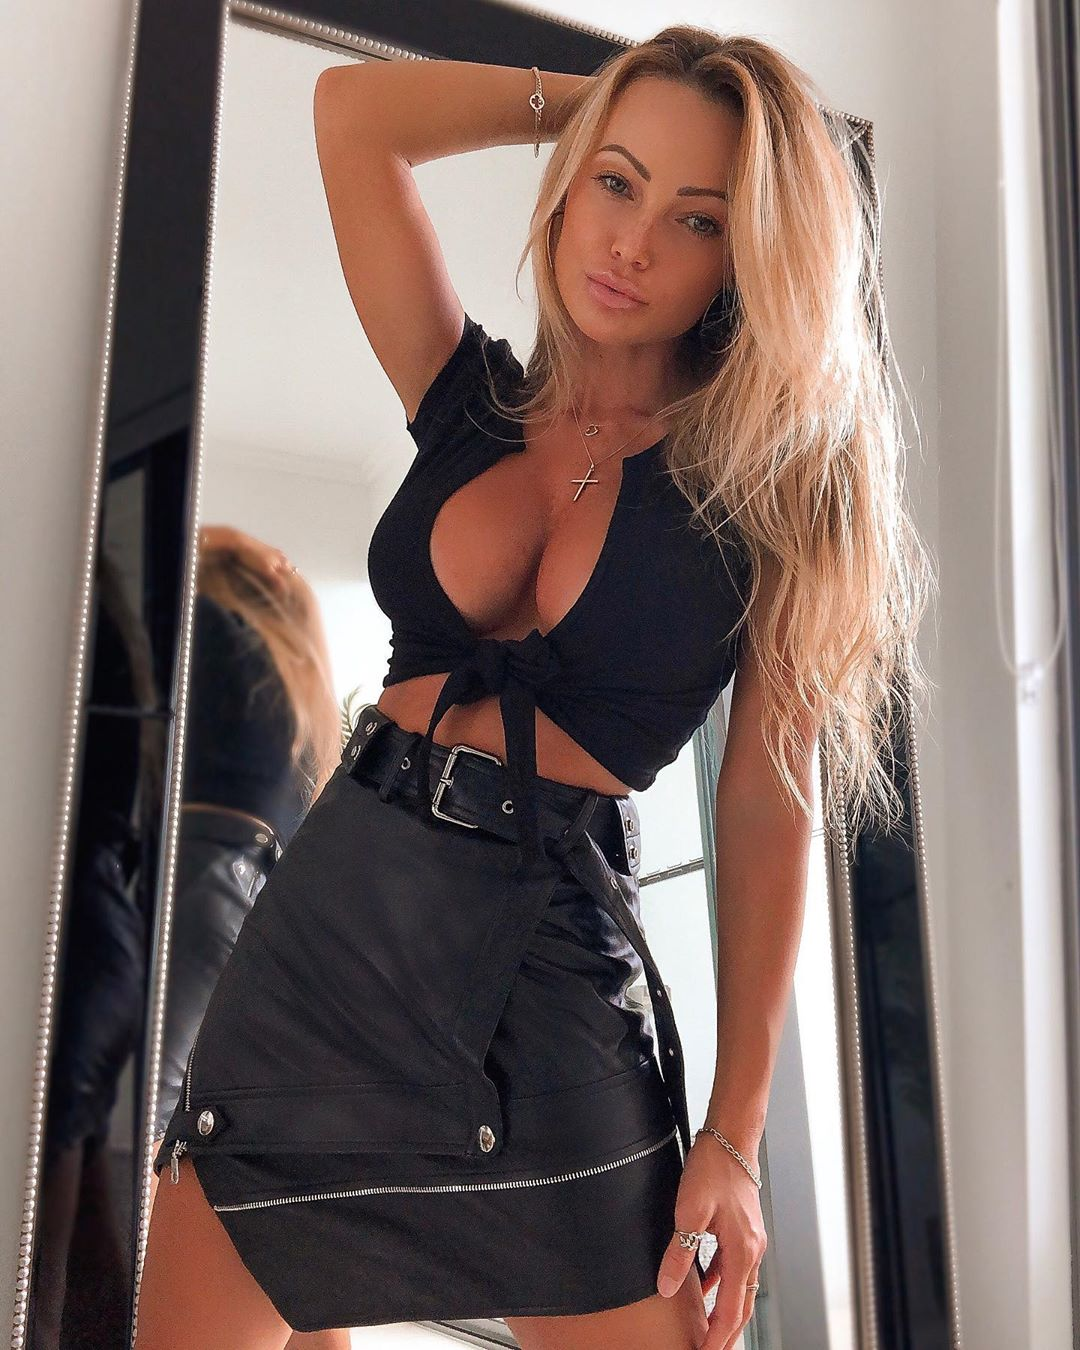 Abby-Dowse-Wallpapers-Insta-Fit-Bio-5